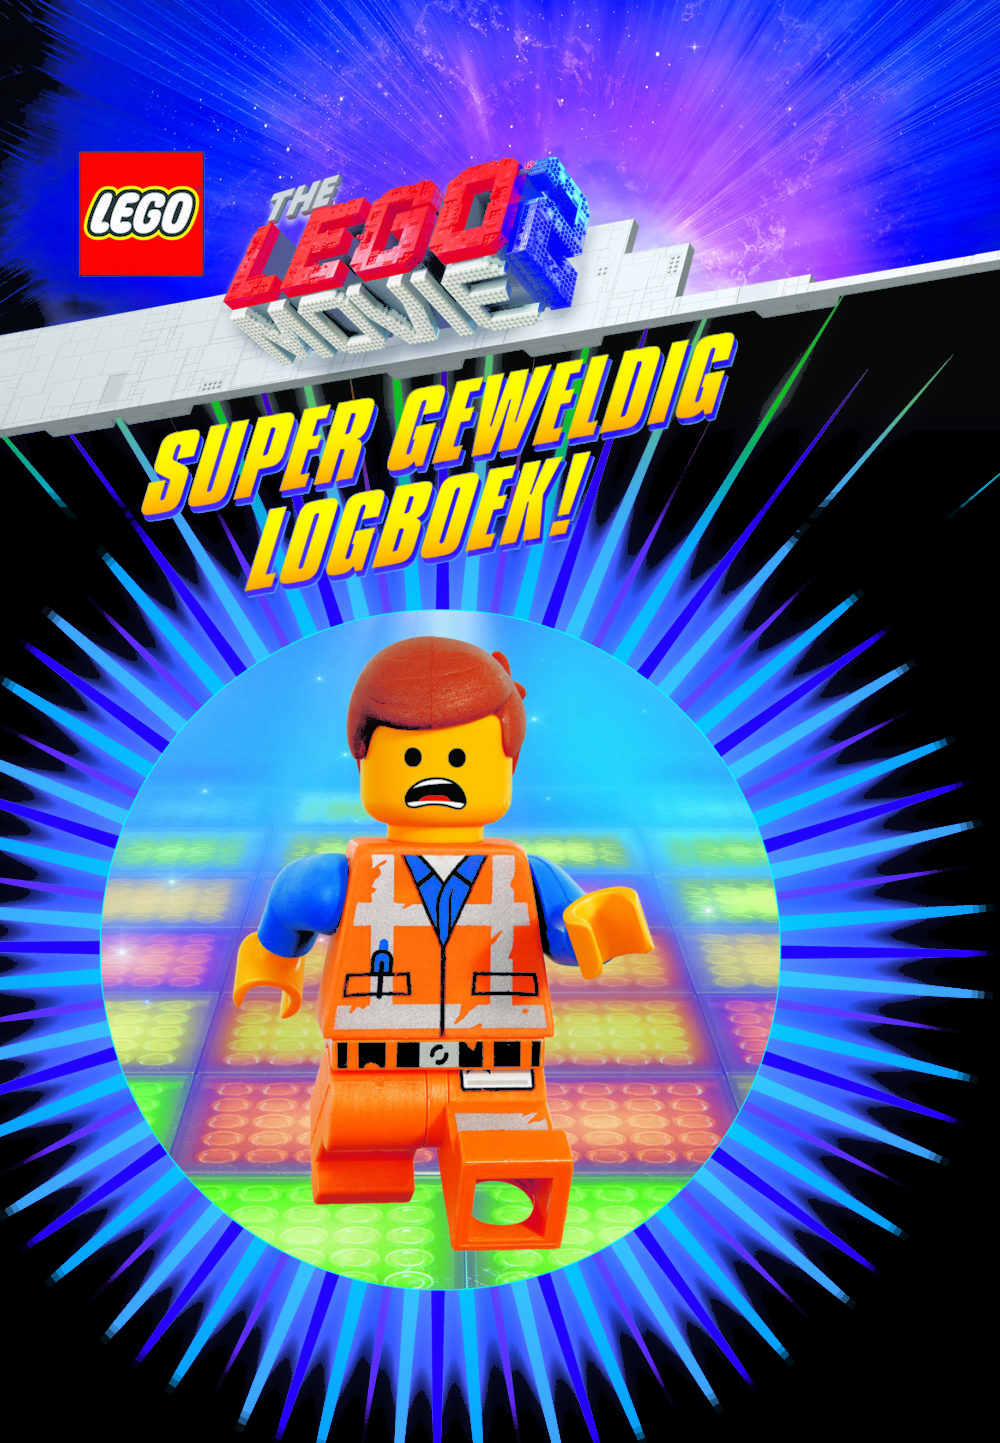 The LEGO Movie 2 Super Geweldige Logboek